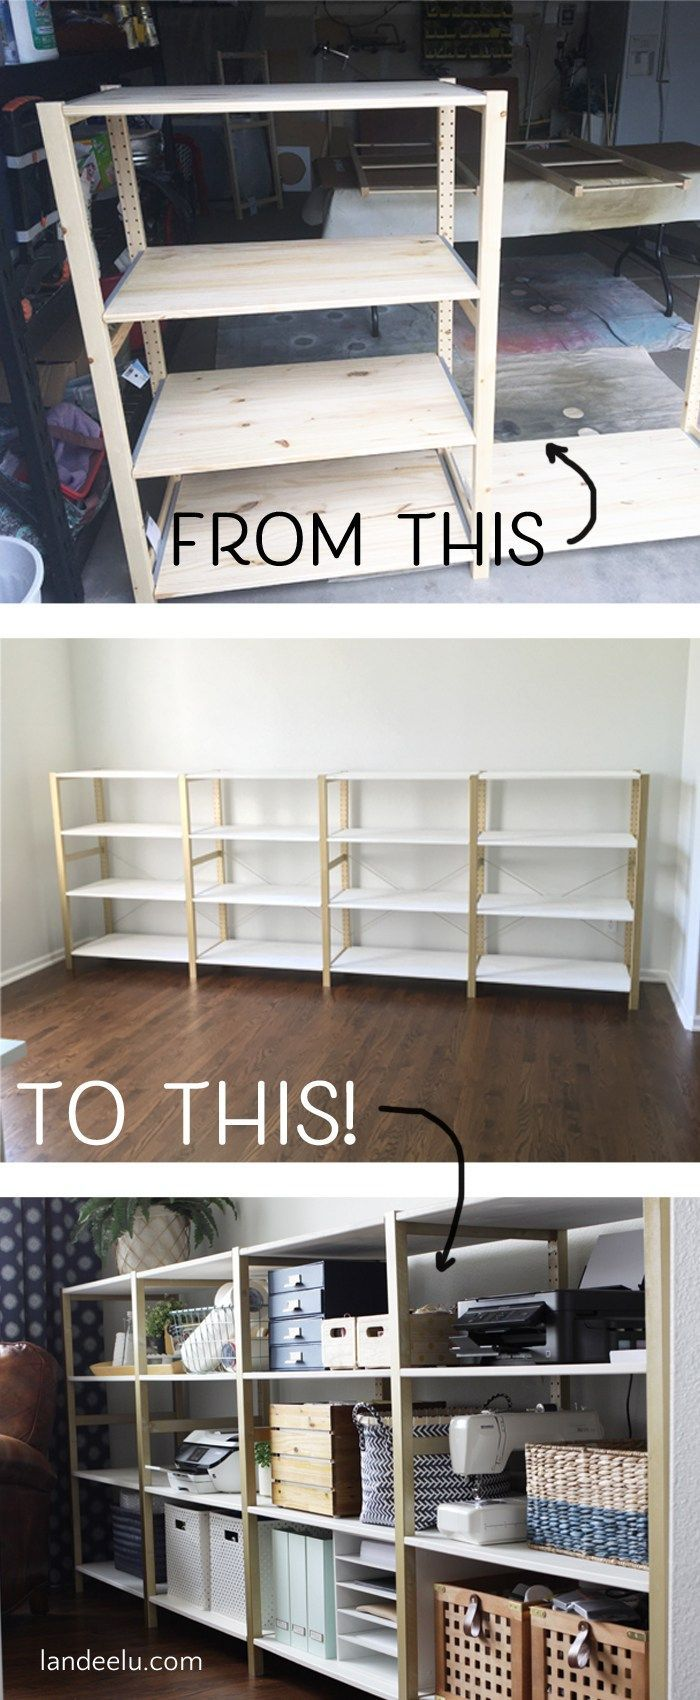 Over 11 linear feet of chic shelving made from super cheap IKEA storage shelves! This is an awesome IKEA hack.